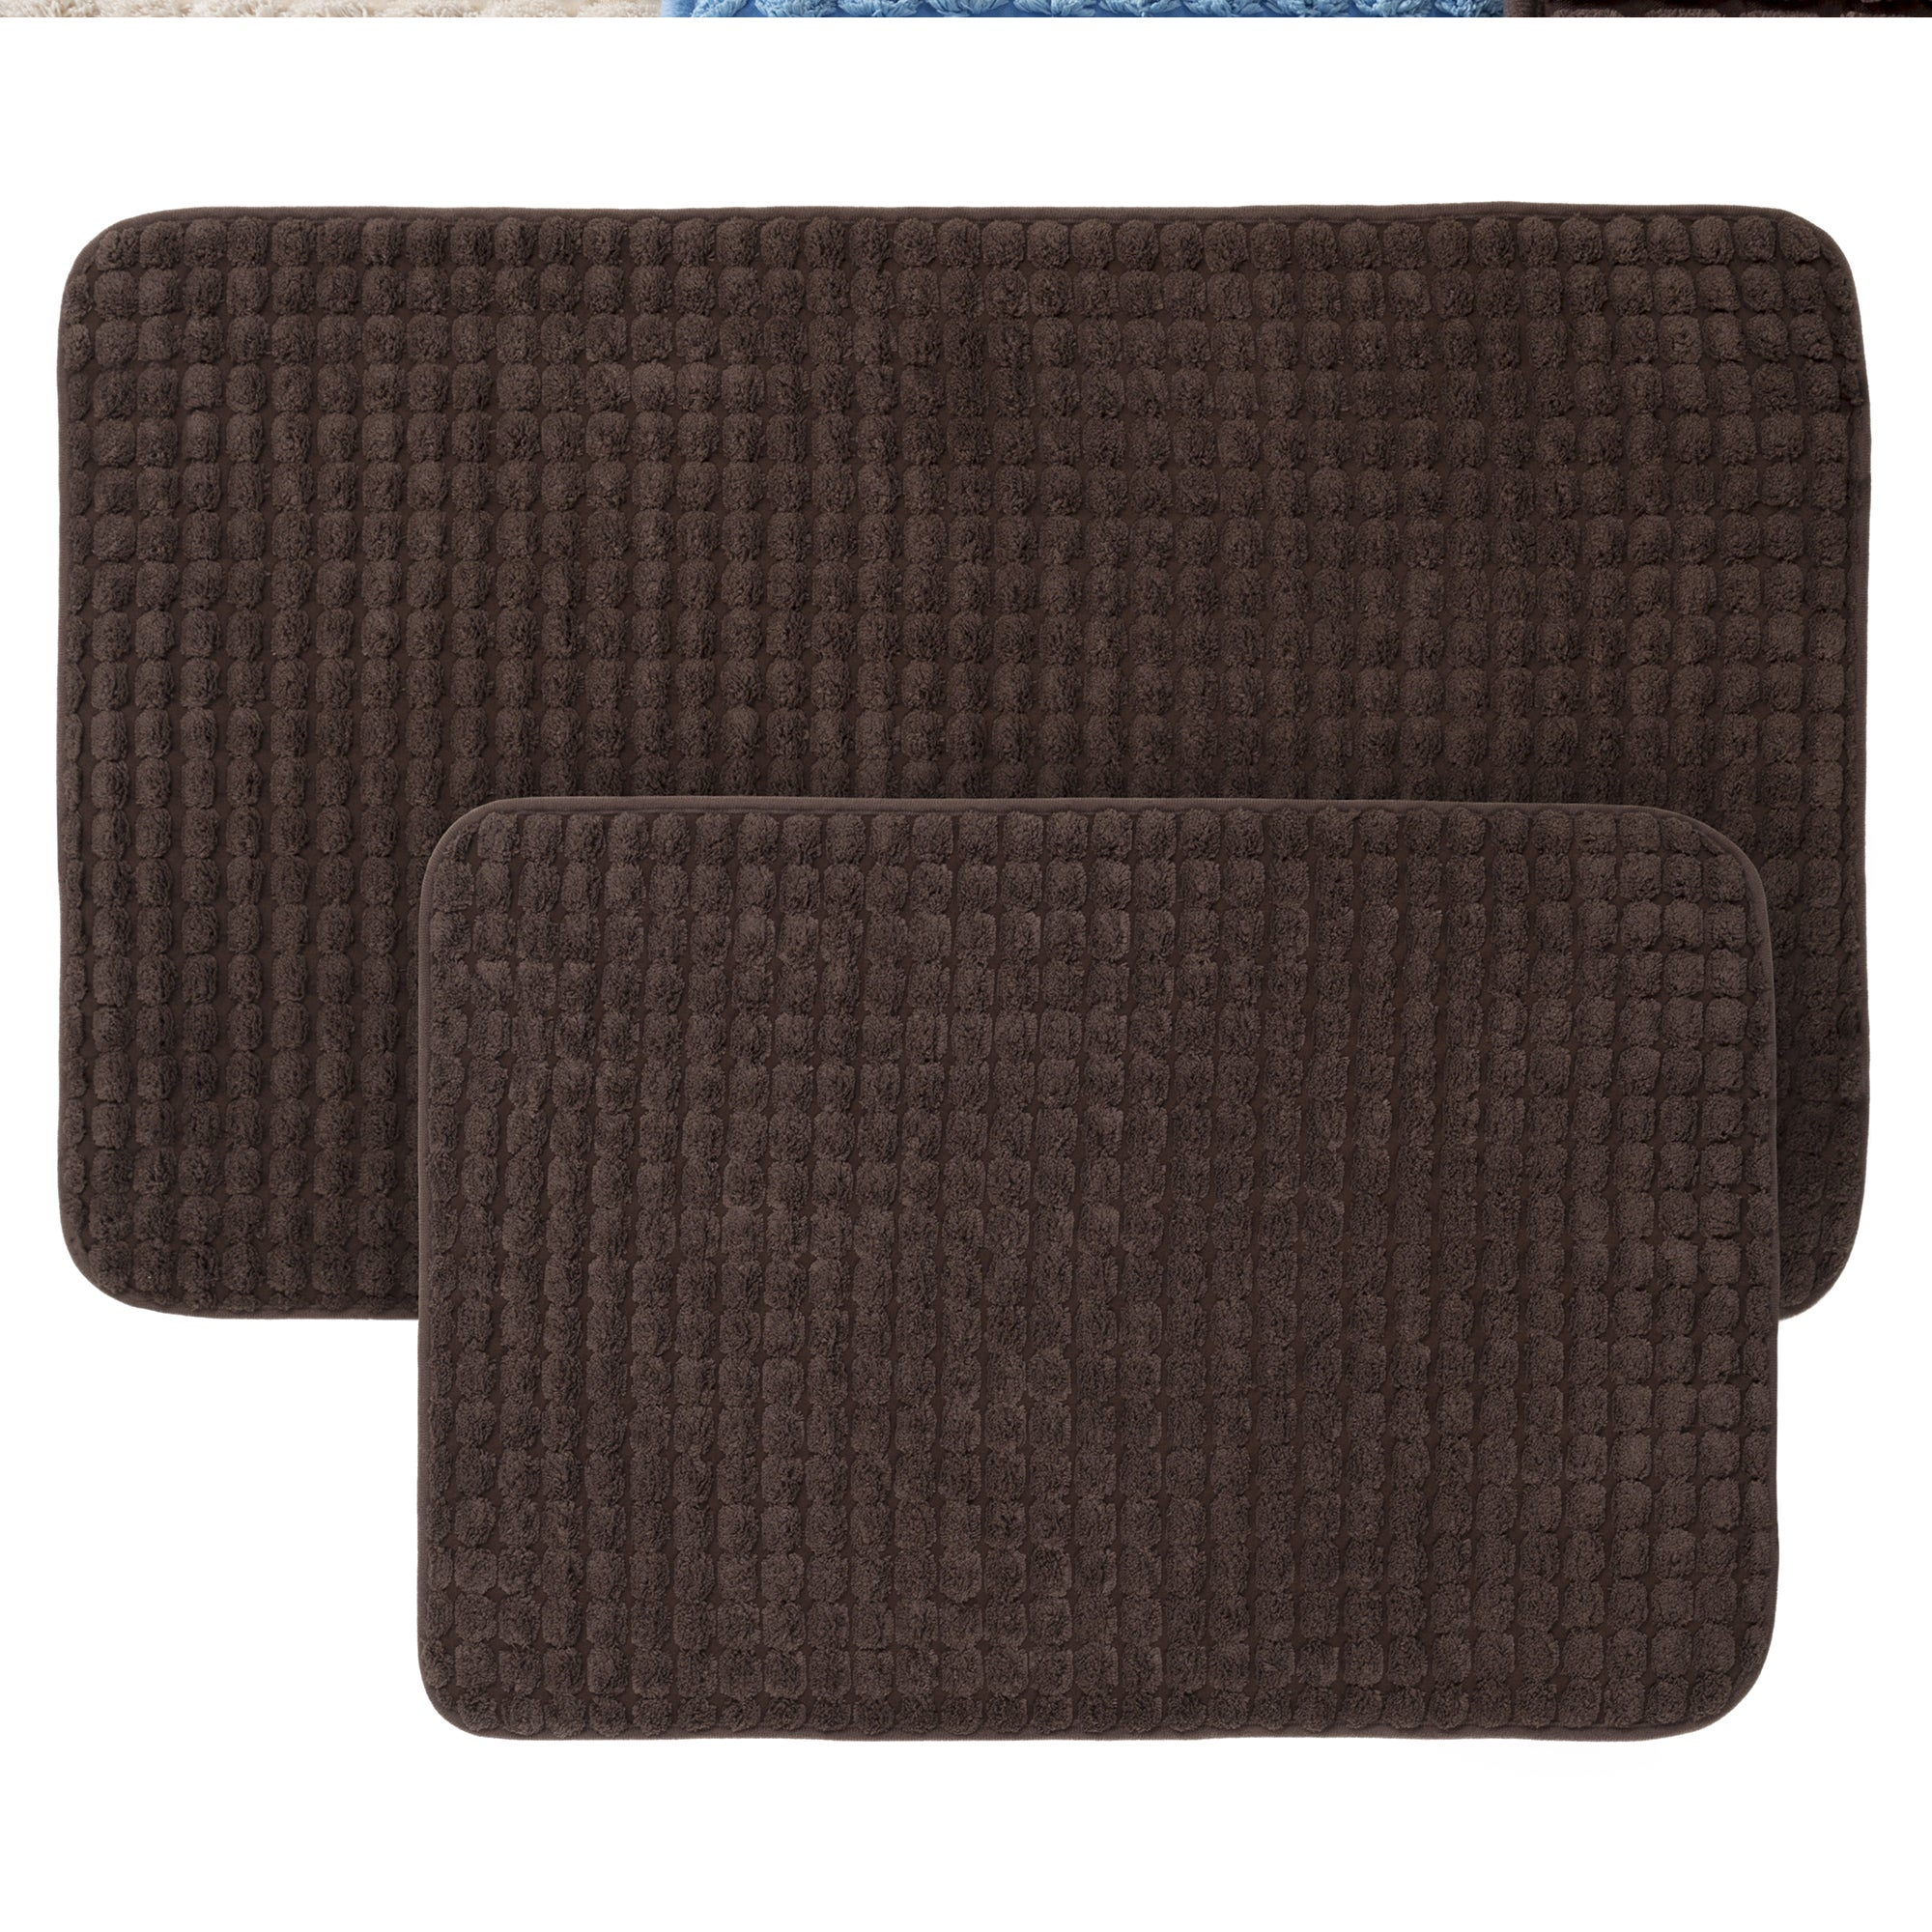 Shop 2 Piece Memory Foam Bath Mat Set By Windsor Home See